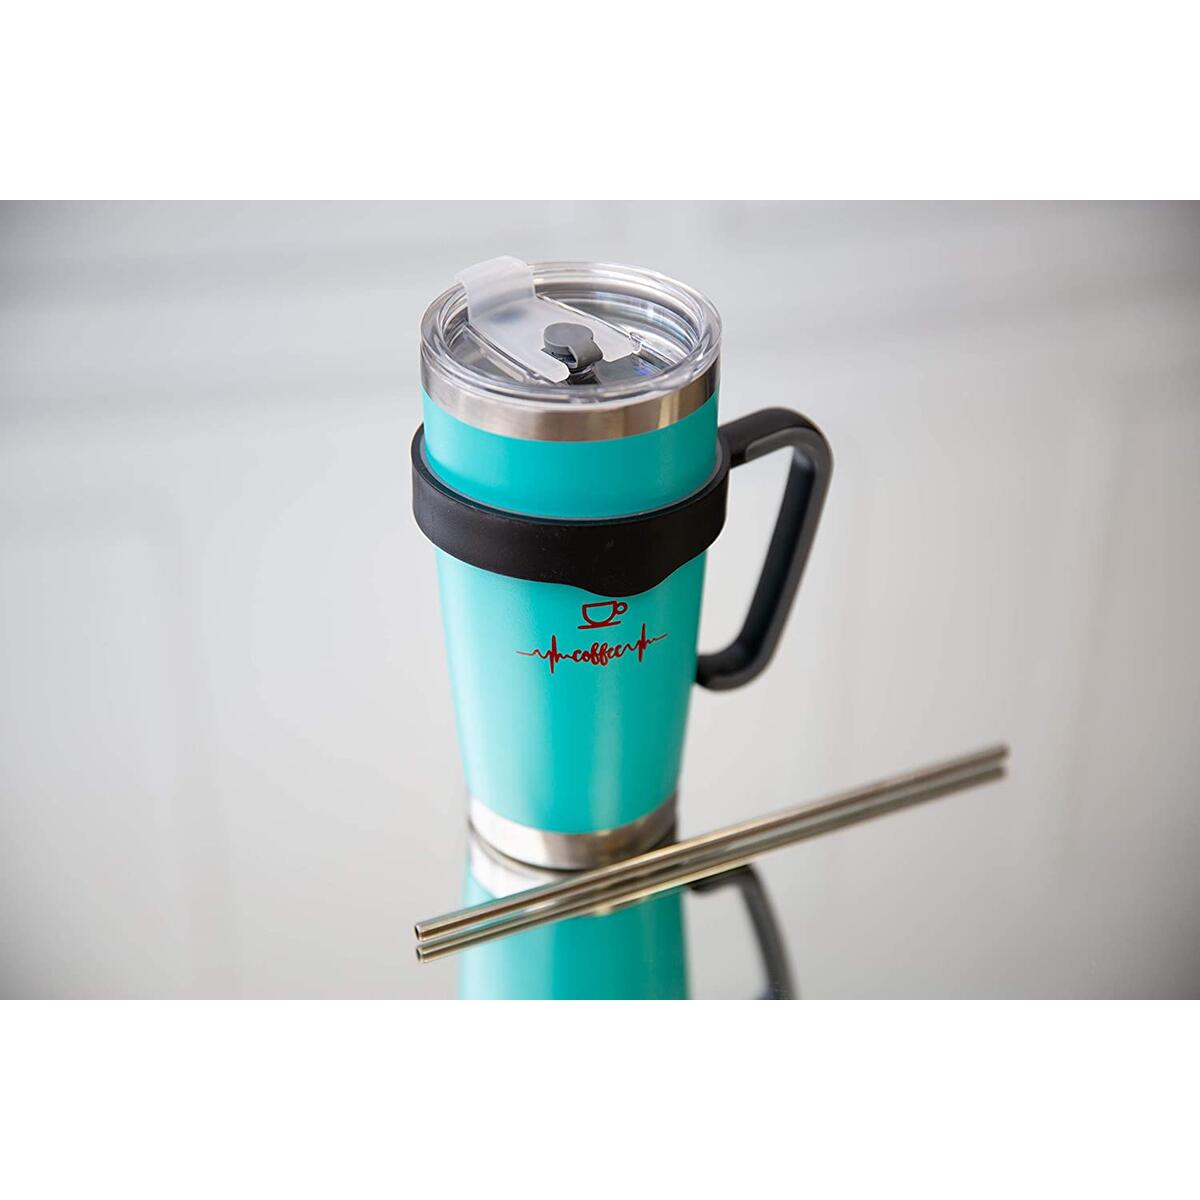 Maribus-FL Tumbler 20 oz Stainless Steel Vacuum Insulated Tumbler with Lids and Straw [Travel Mug] Double Wall Water Coffee Cup for Home, Office, Outdoor Works Great for Ice Drinks and Hot Beverage